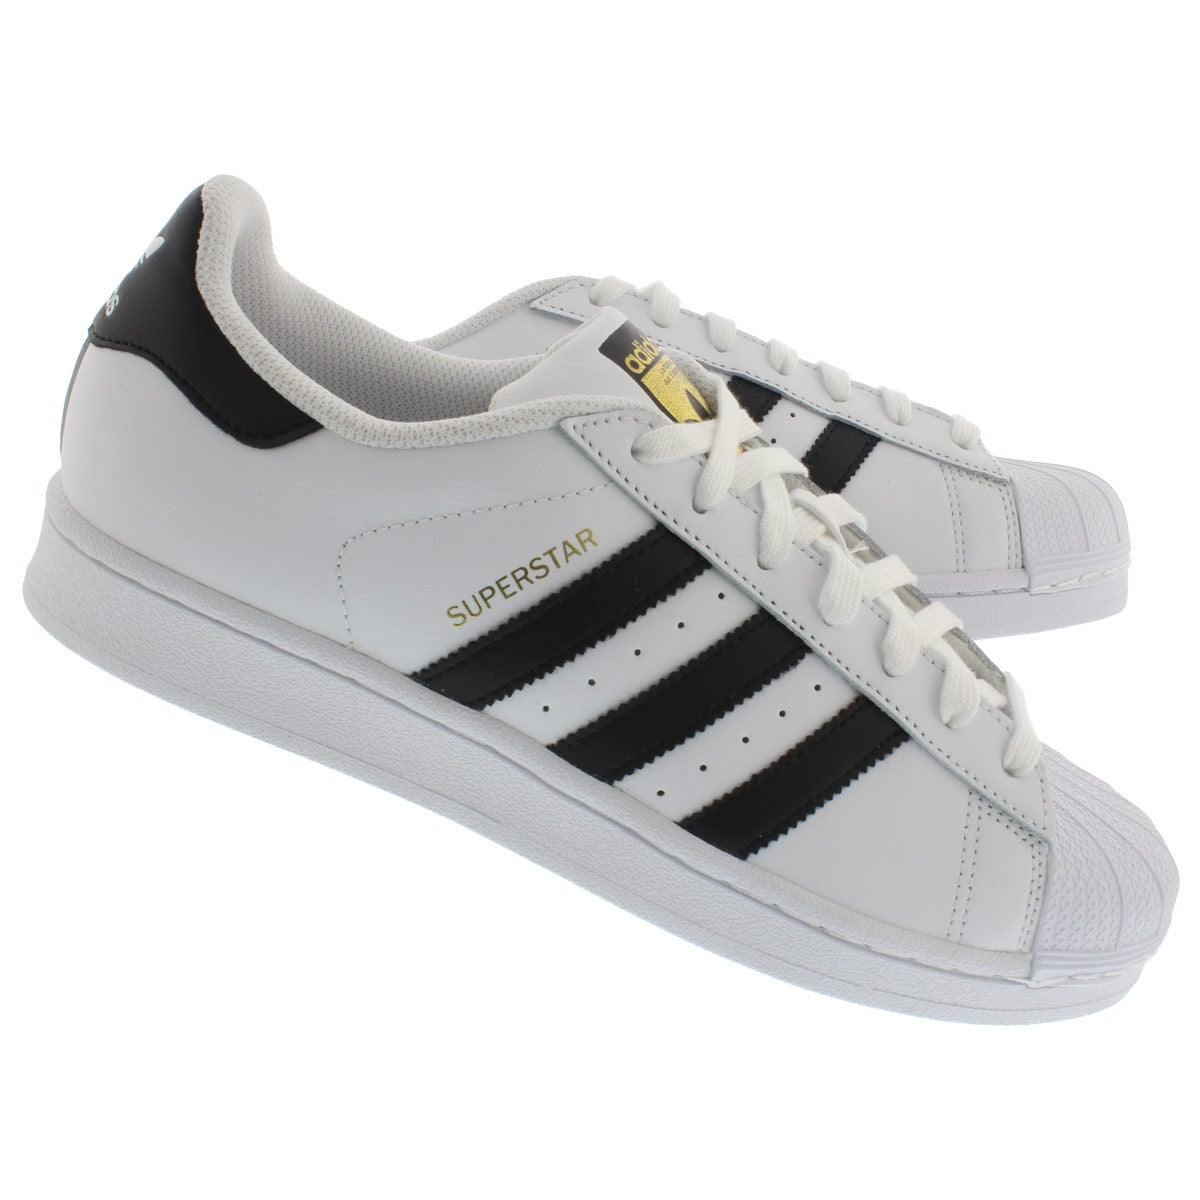 Mns Superstar wht/blk fashion sneaker